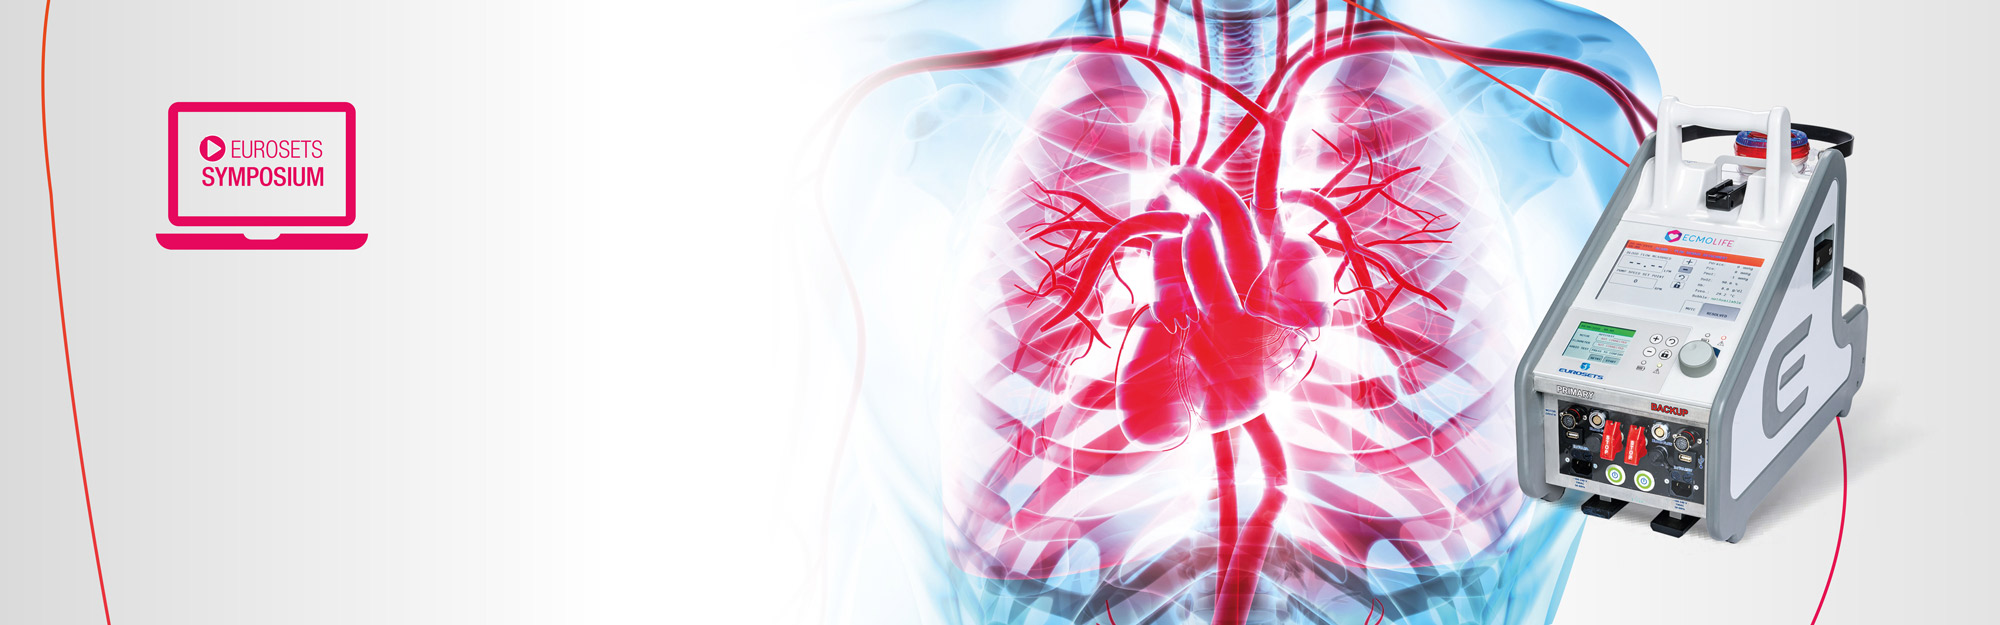 EUROSETS SYMPOSIUM – New frontiers in extracorporeal circulation